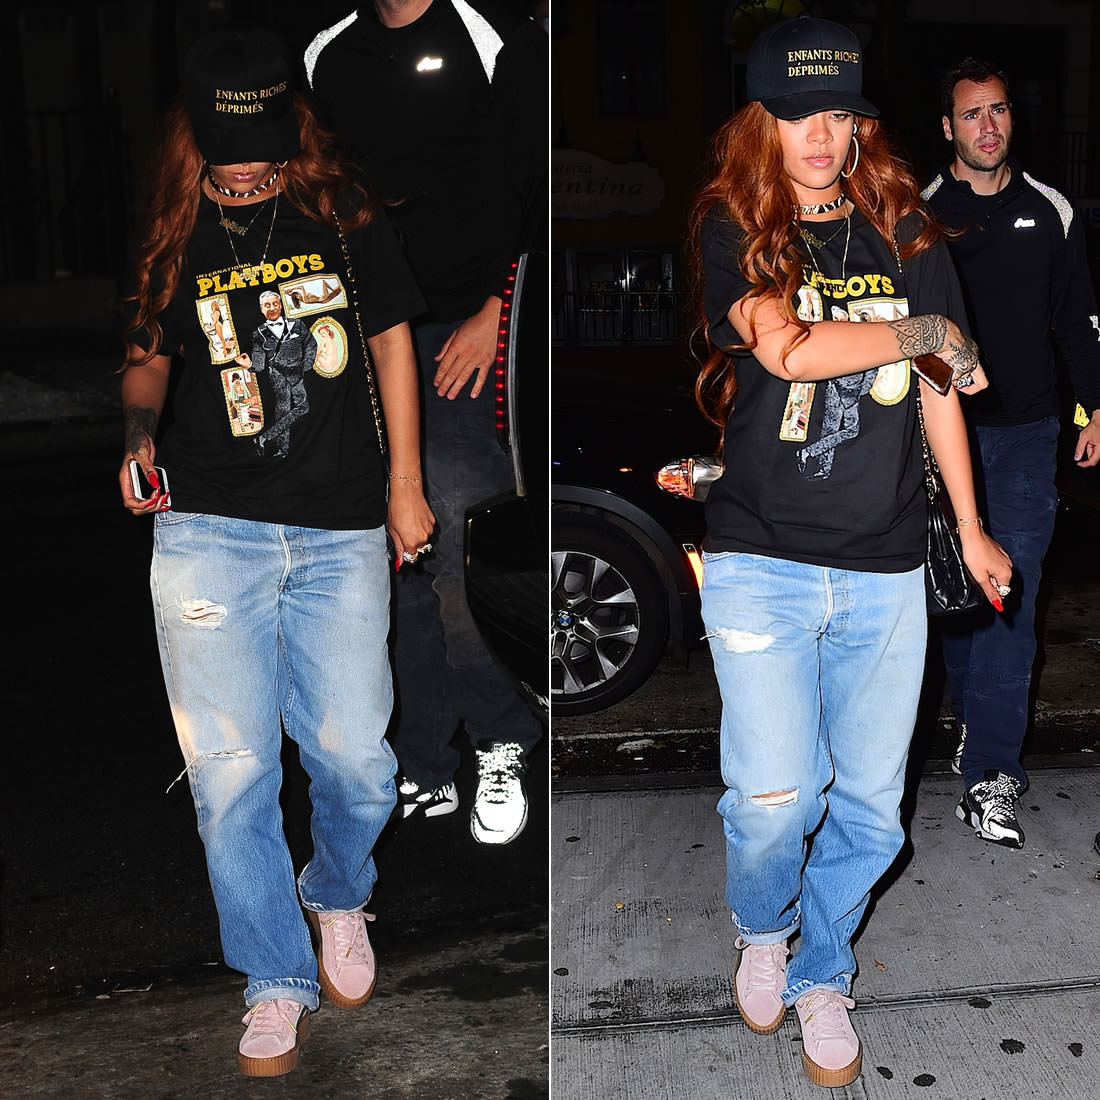 a59f4d442e7 Just yesterday afternoon Rihanna travelled back to New York City after  spending about two weeks working on different projects. She wasted no time  getting ...